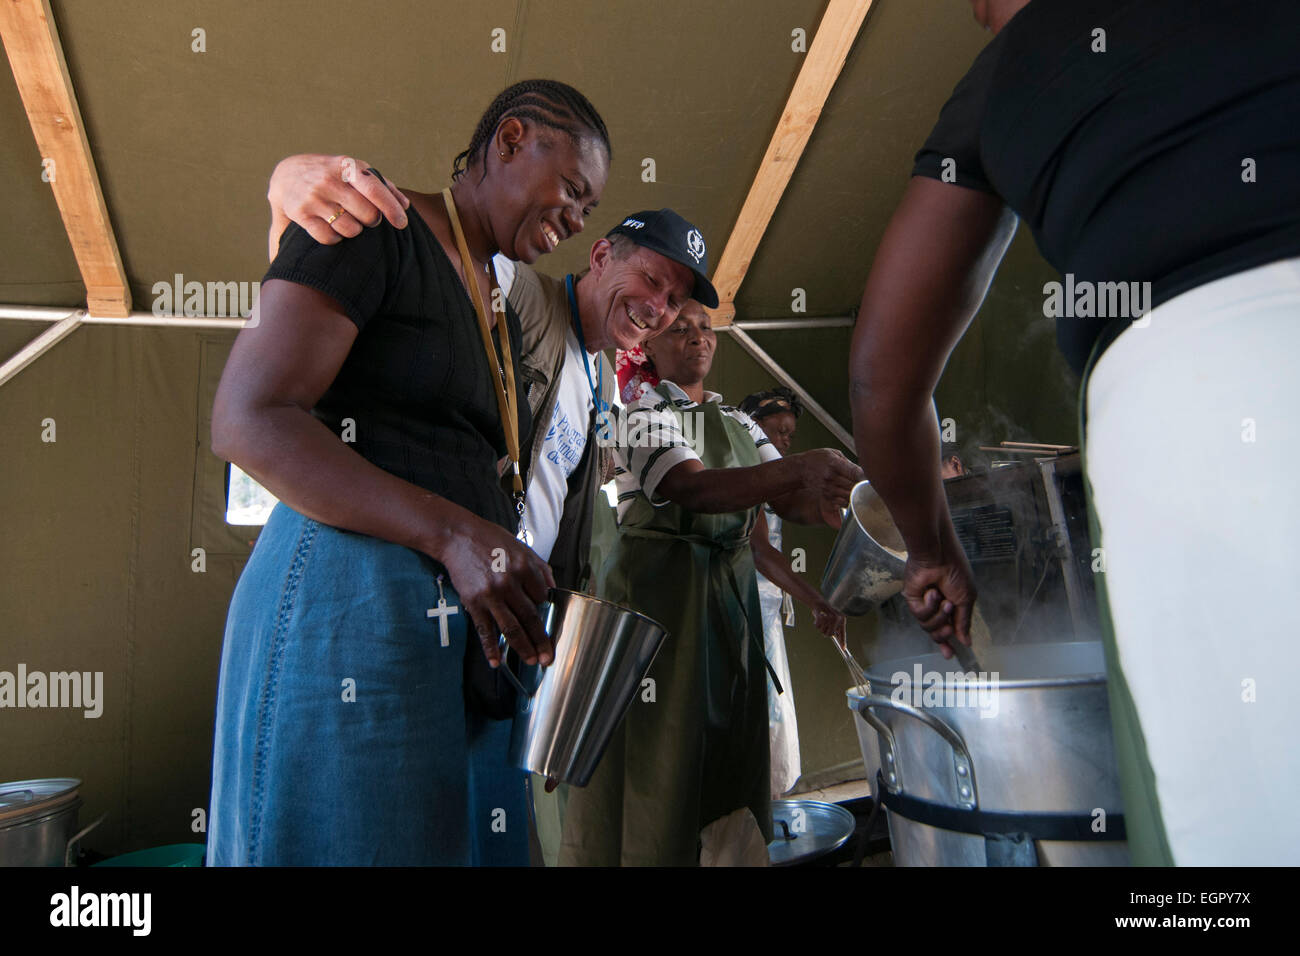 A WFP staff member with local women in a kitchen set up by WFP at a temporary makeshift dwelling compound set up - Stock Image